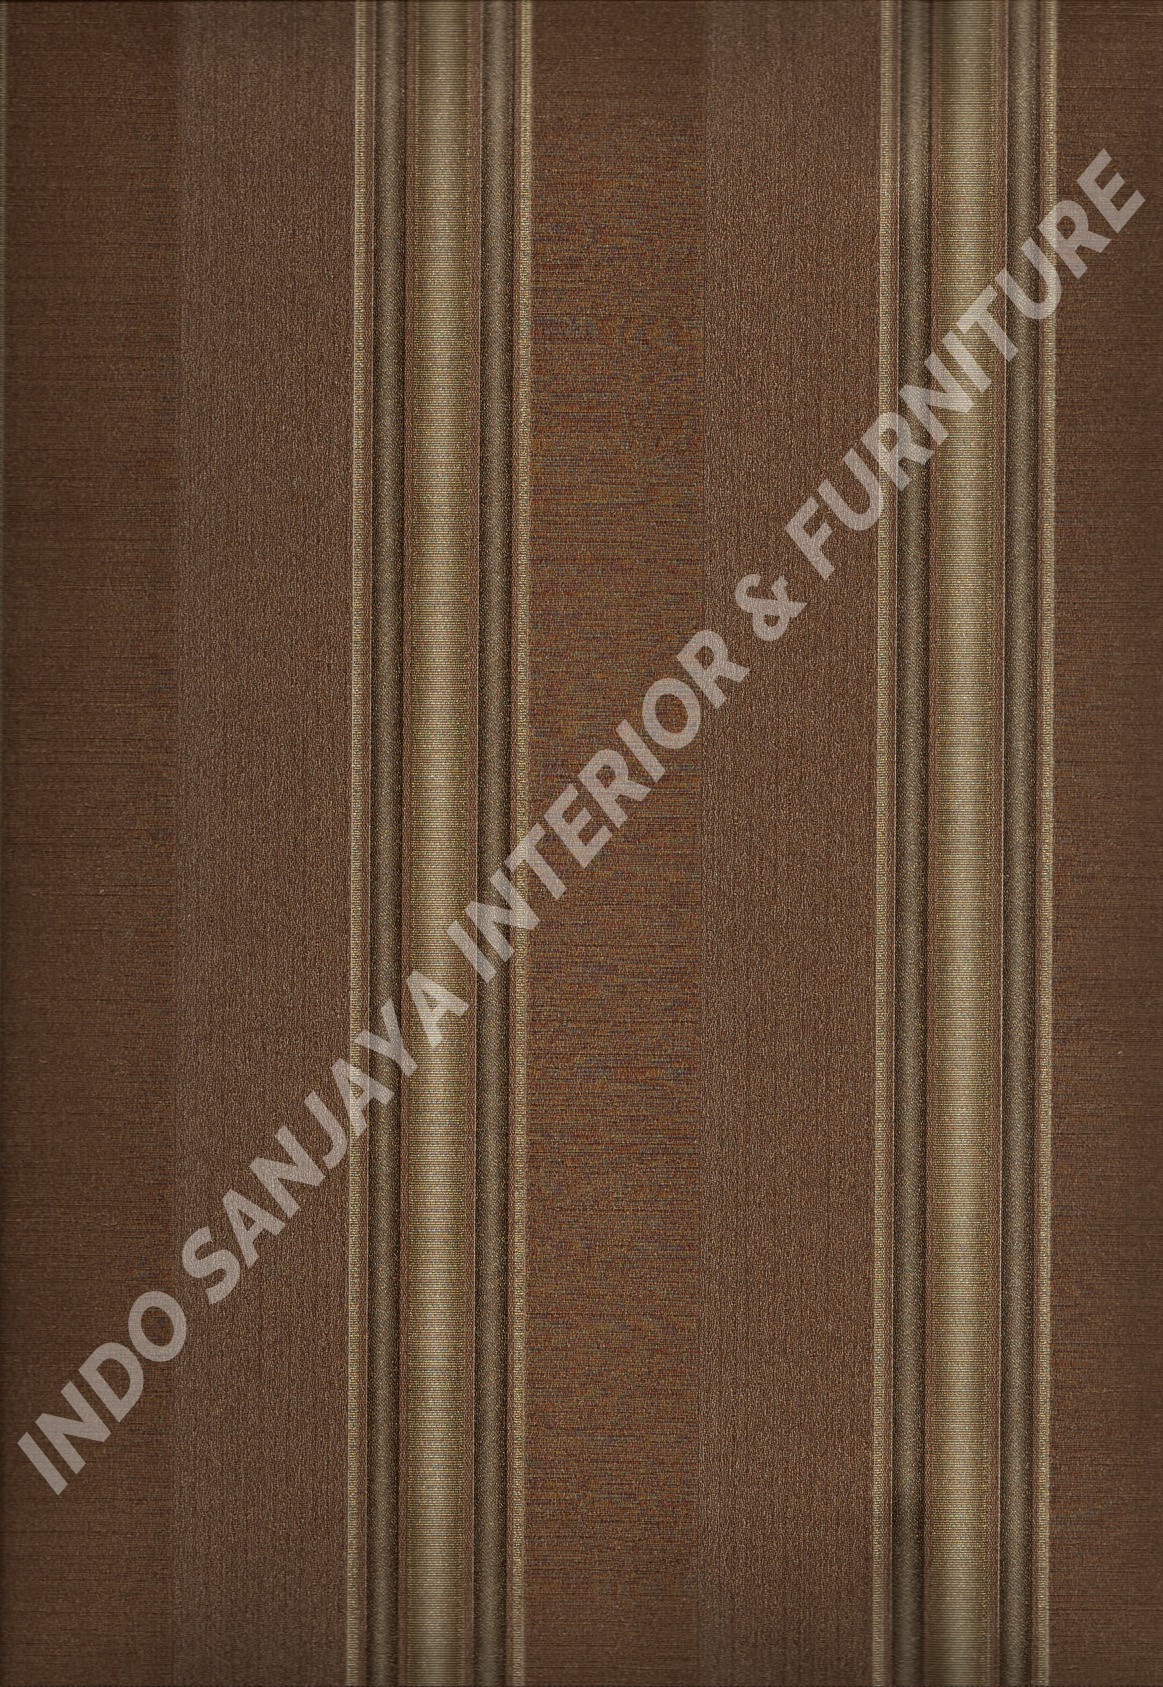 wallpaper   Wallpaper Garis 87074:87074 corak  warna